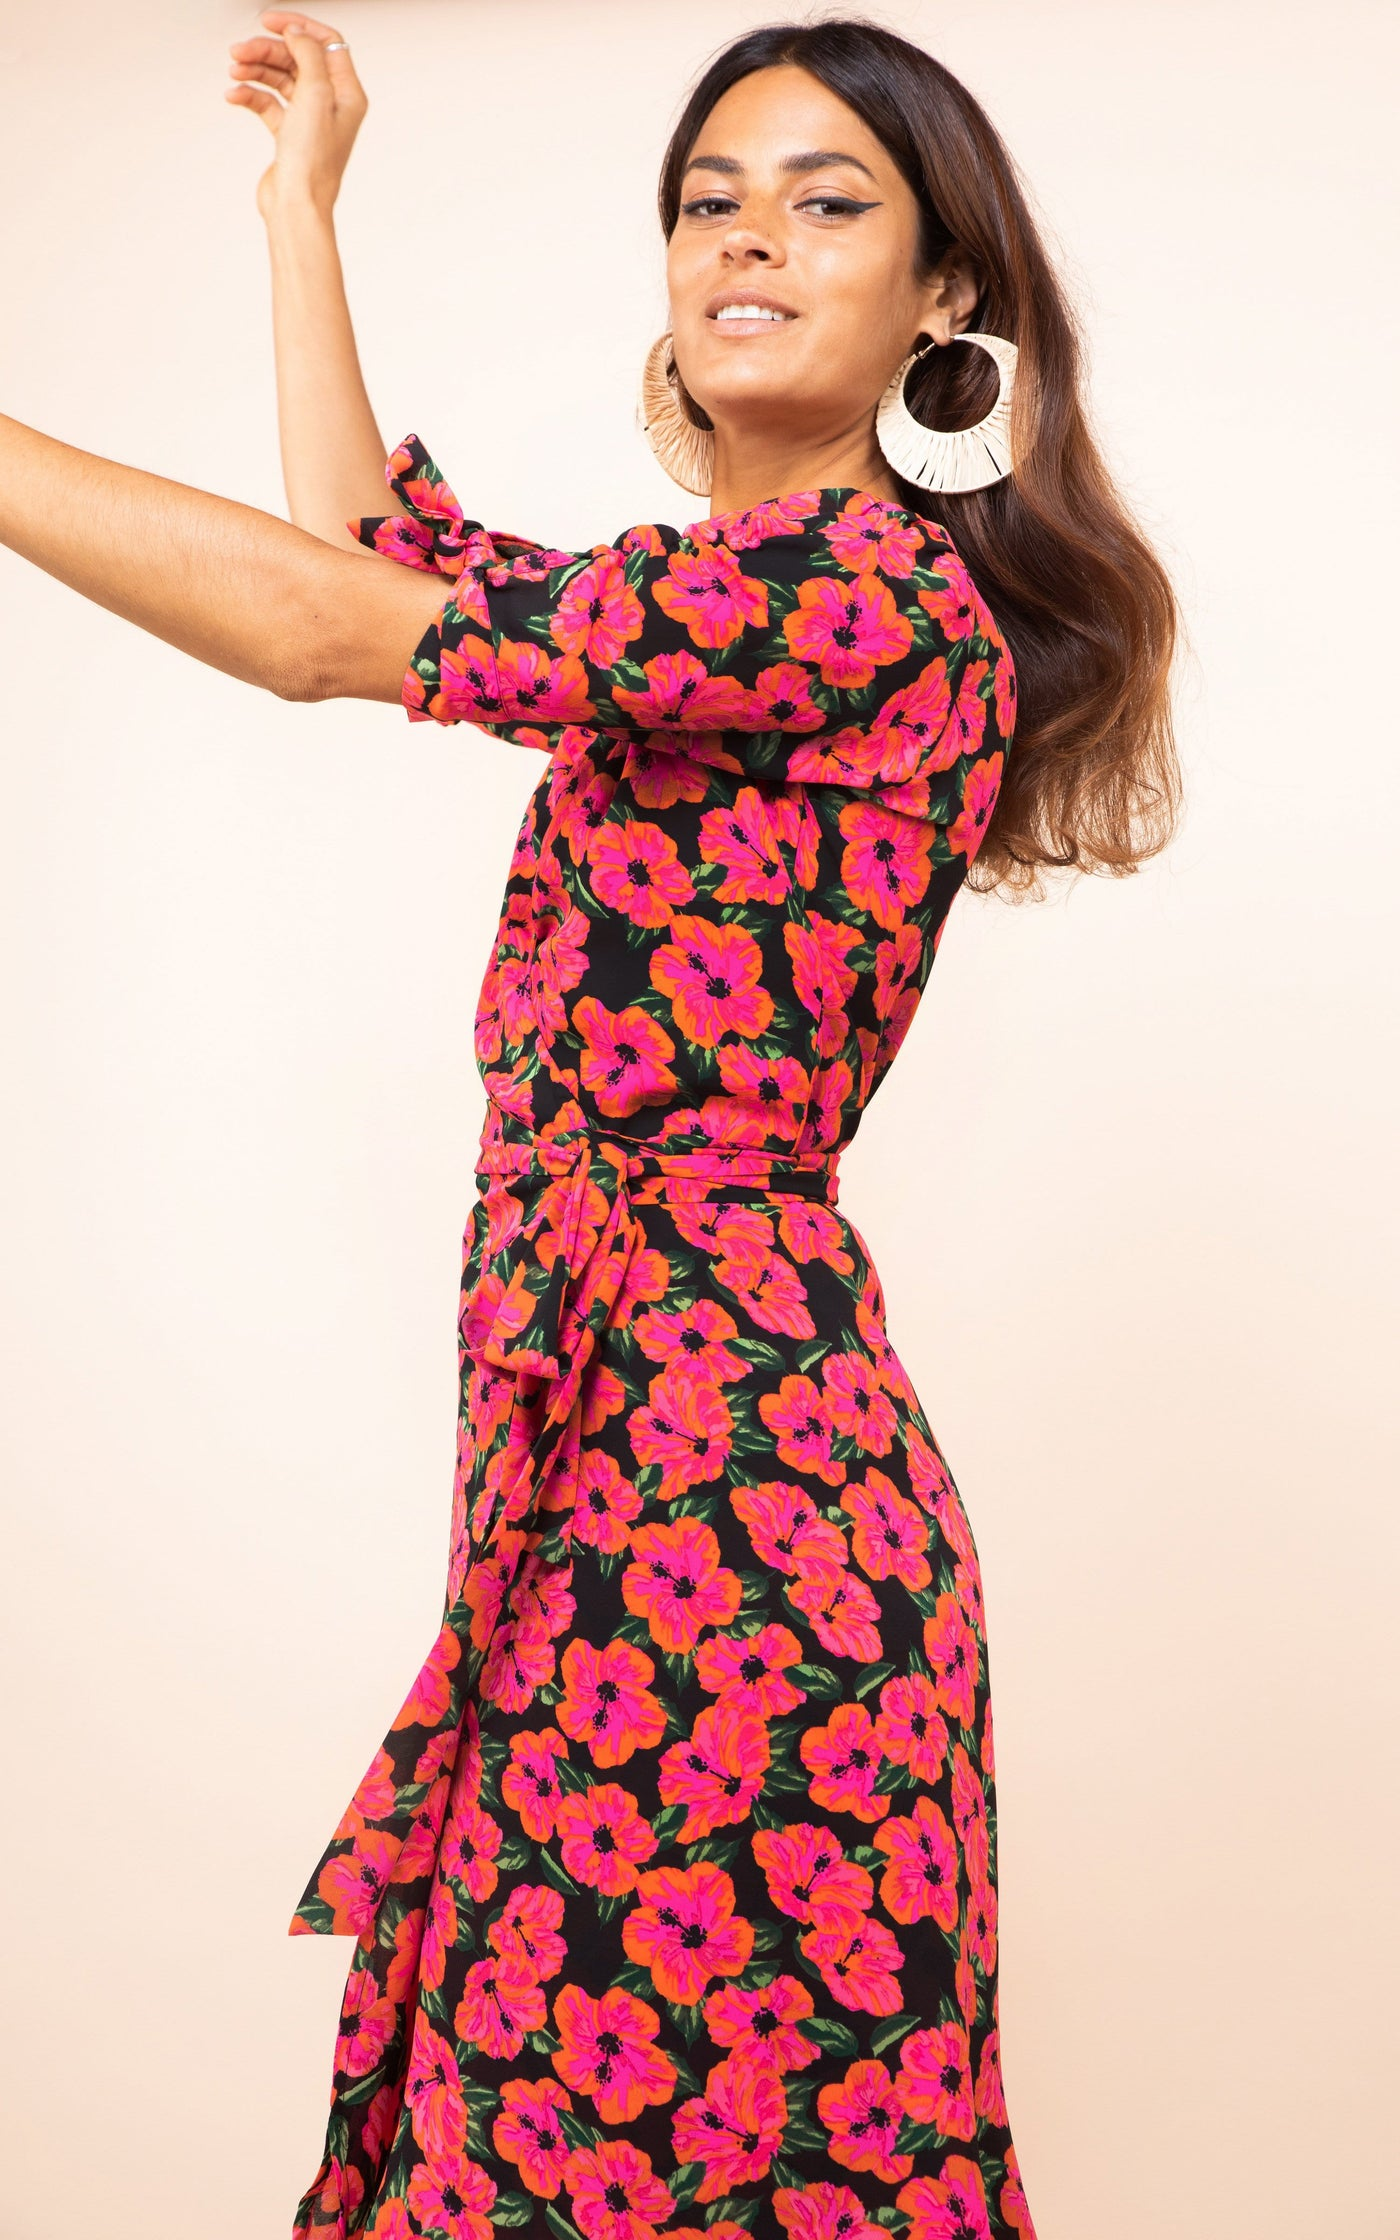 Dancing Leopard model faces sideways with arms up wearing Olivera Midi Dress in pink floral print